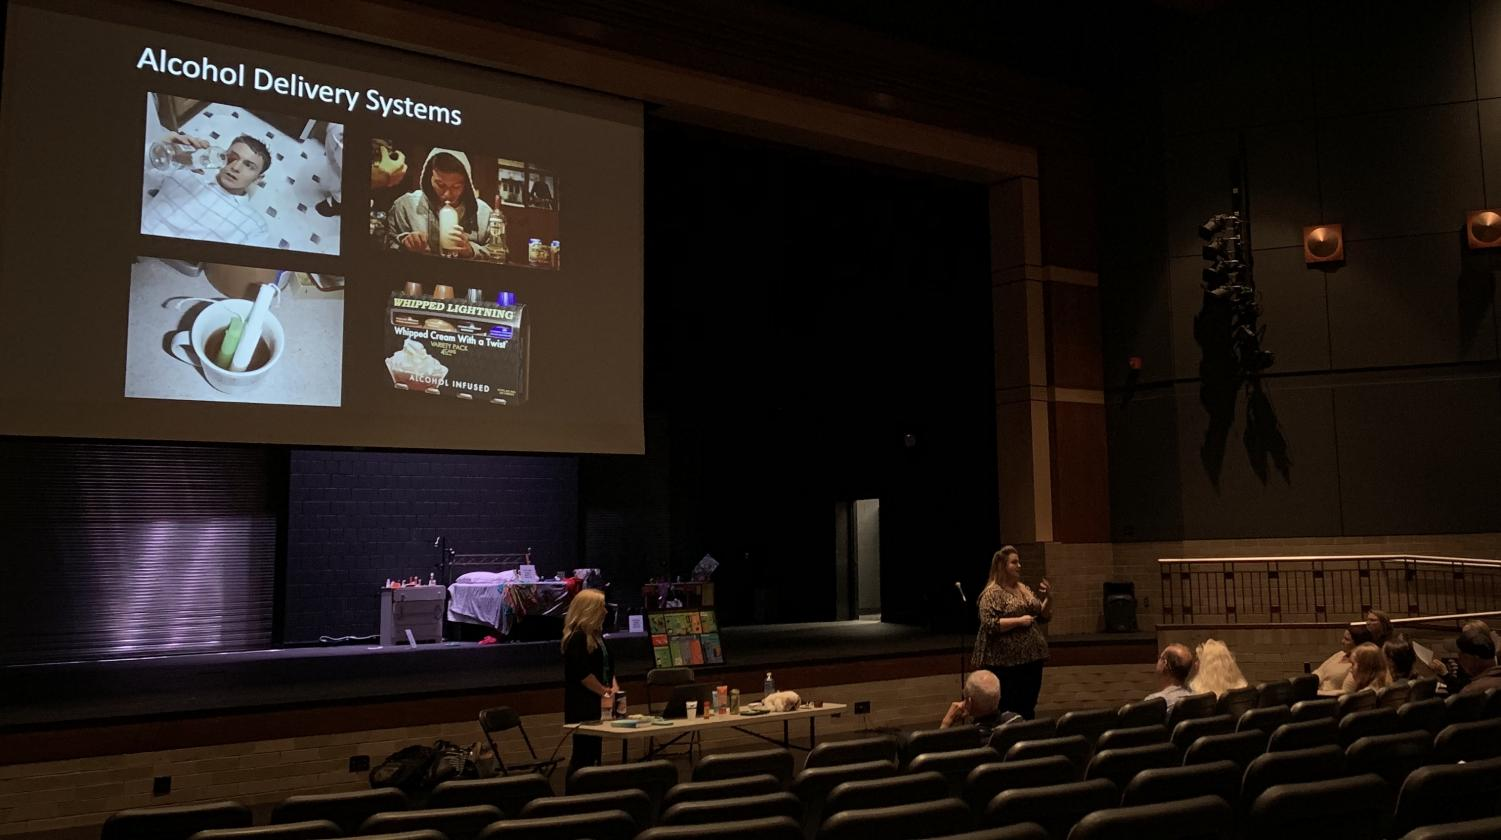 The Top Secret Project was held Sept. 30 in the auditorium. The Hazelden Betty Ford Foundation led a presentation about the